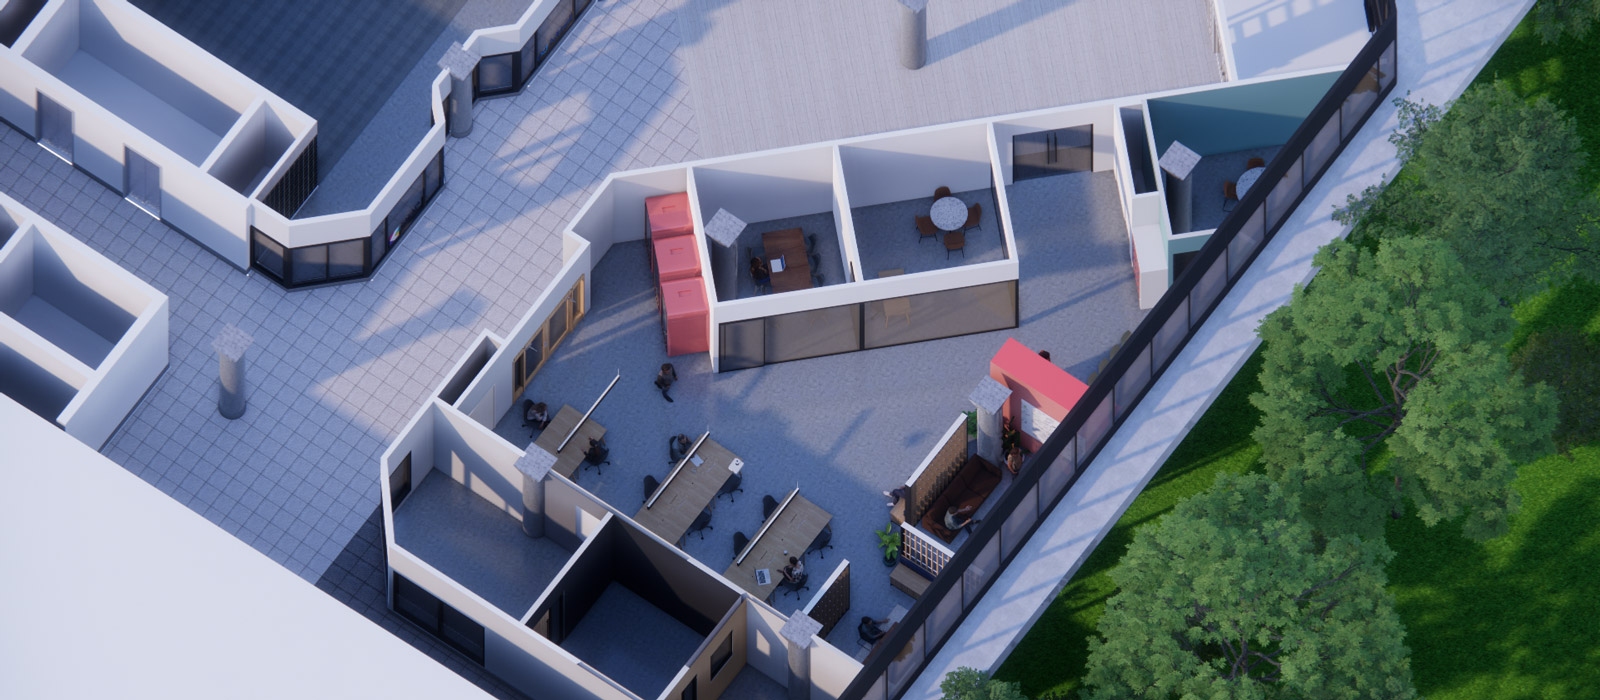 Innovation space render from an aerial view